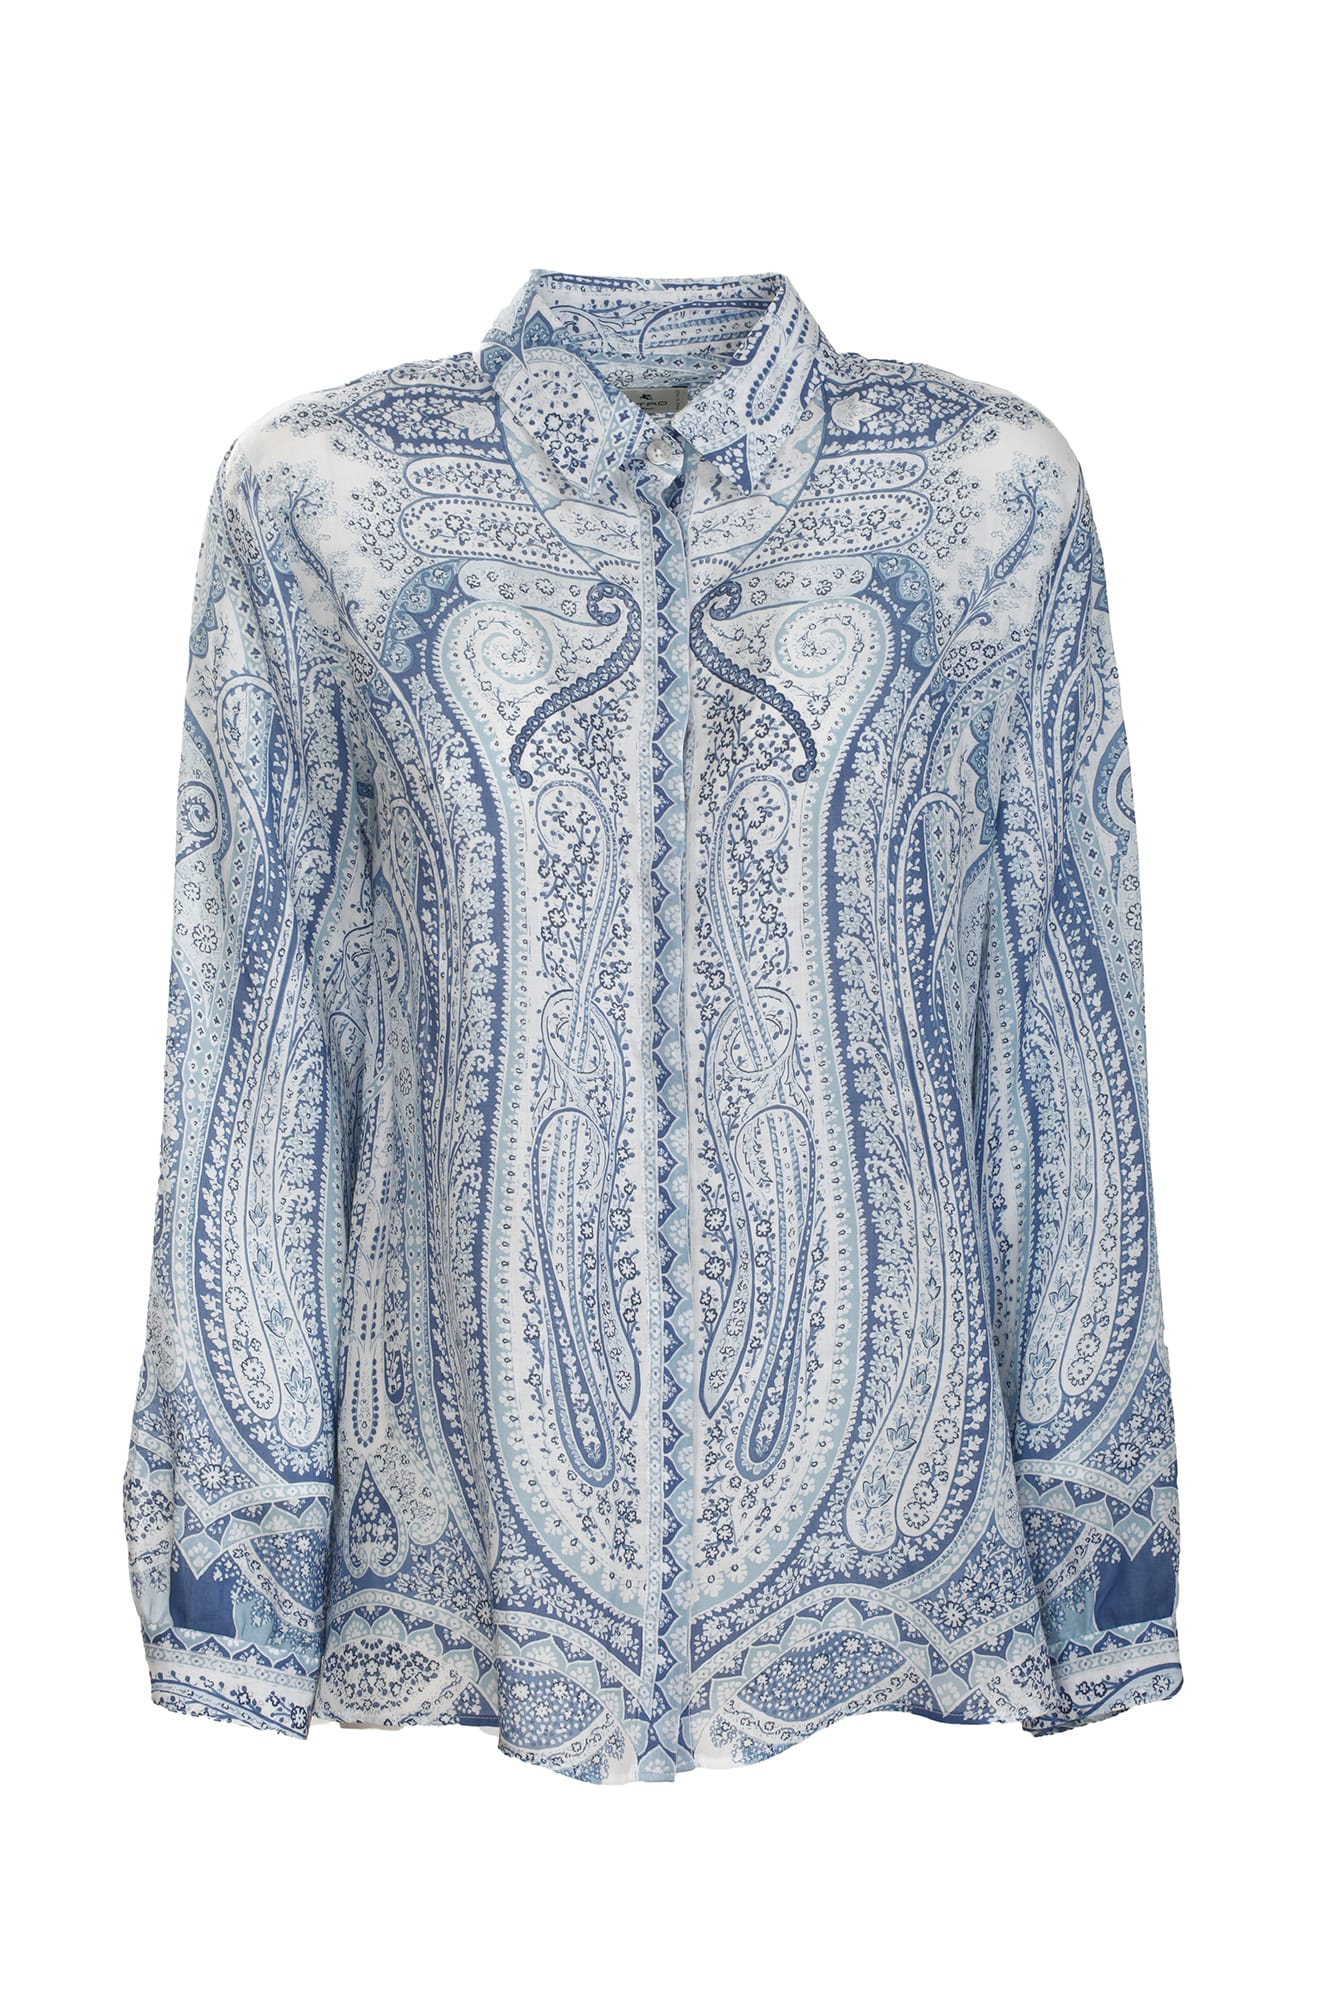 Etro stretch cotton shirt, decorated